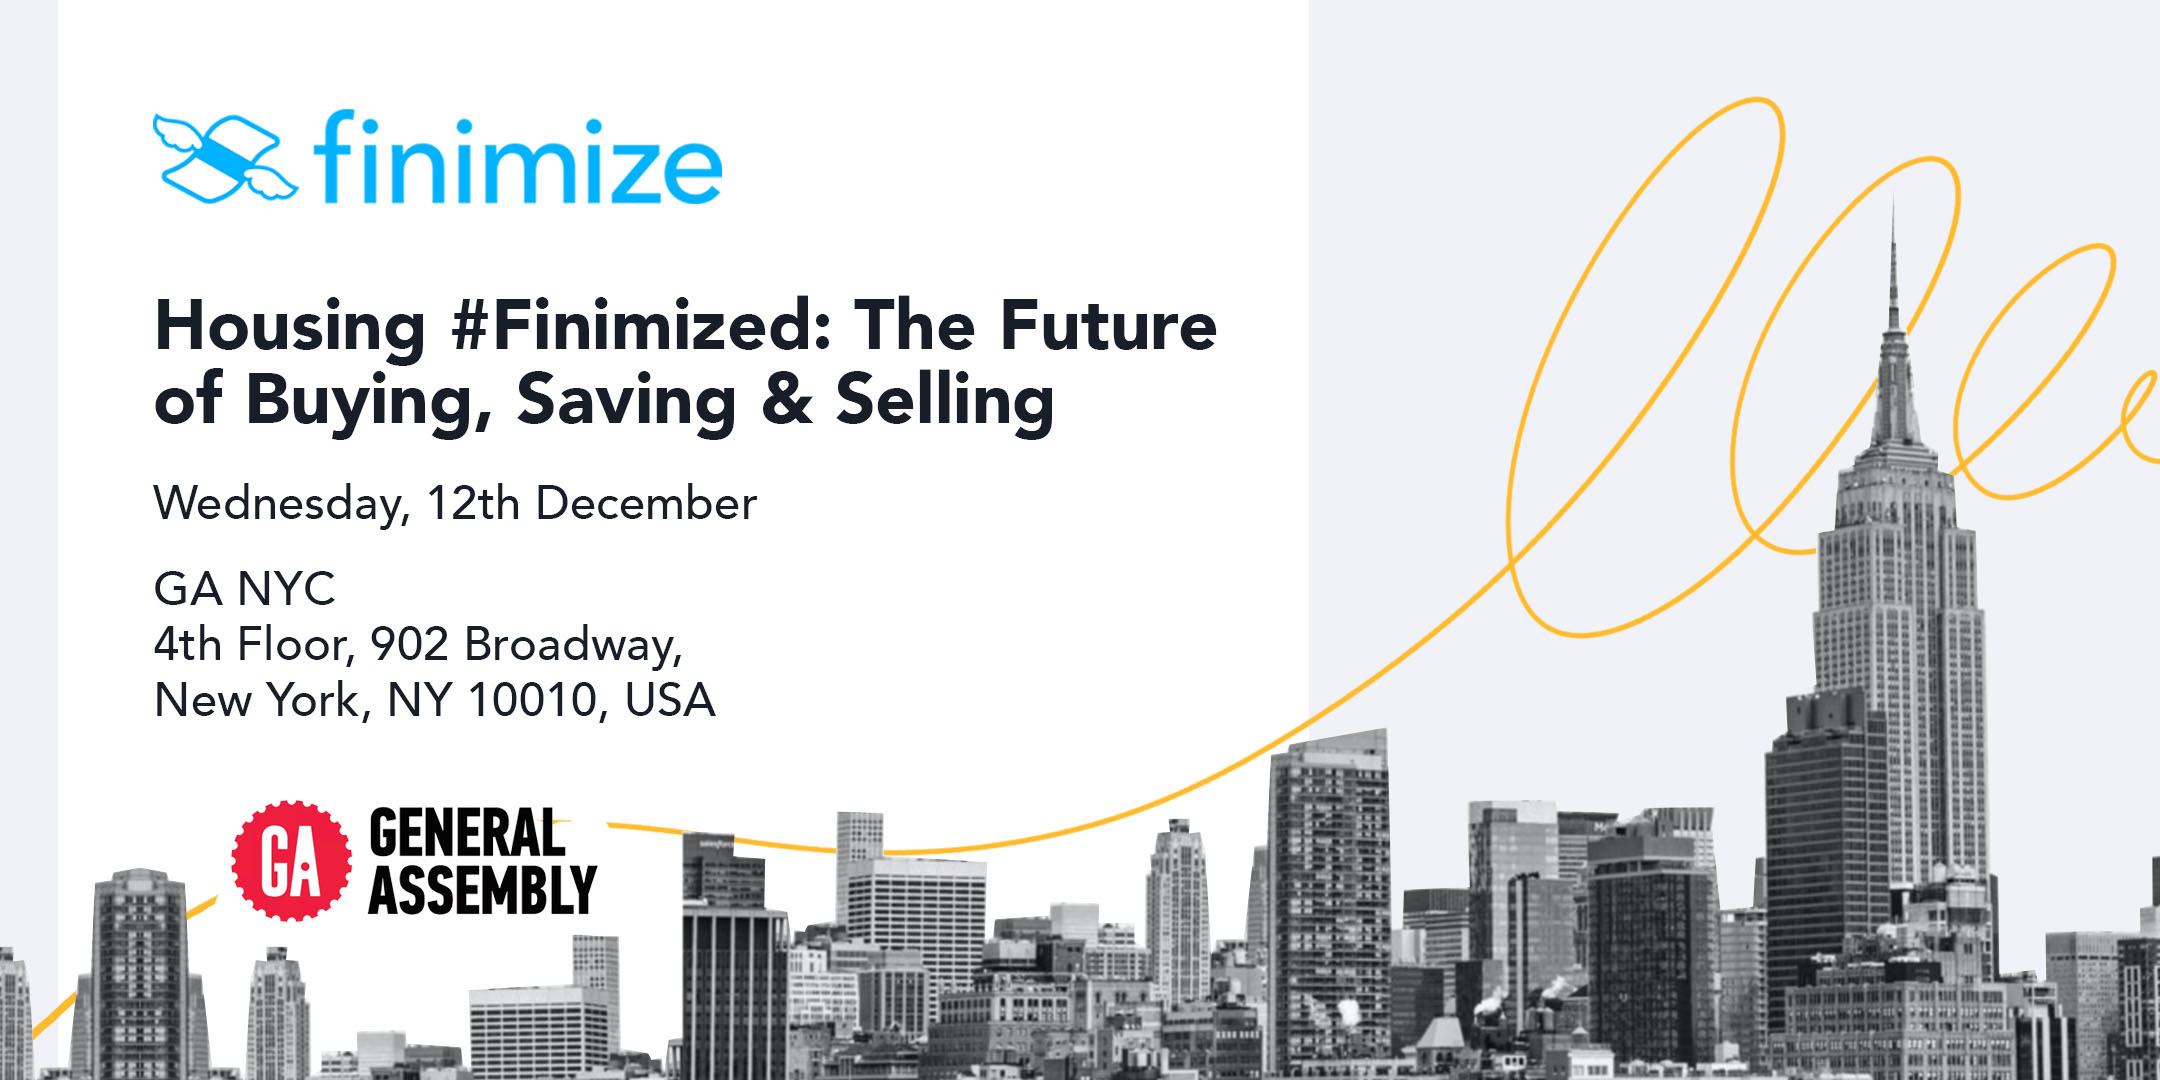 The Future of Buying, Saving & Selling